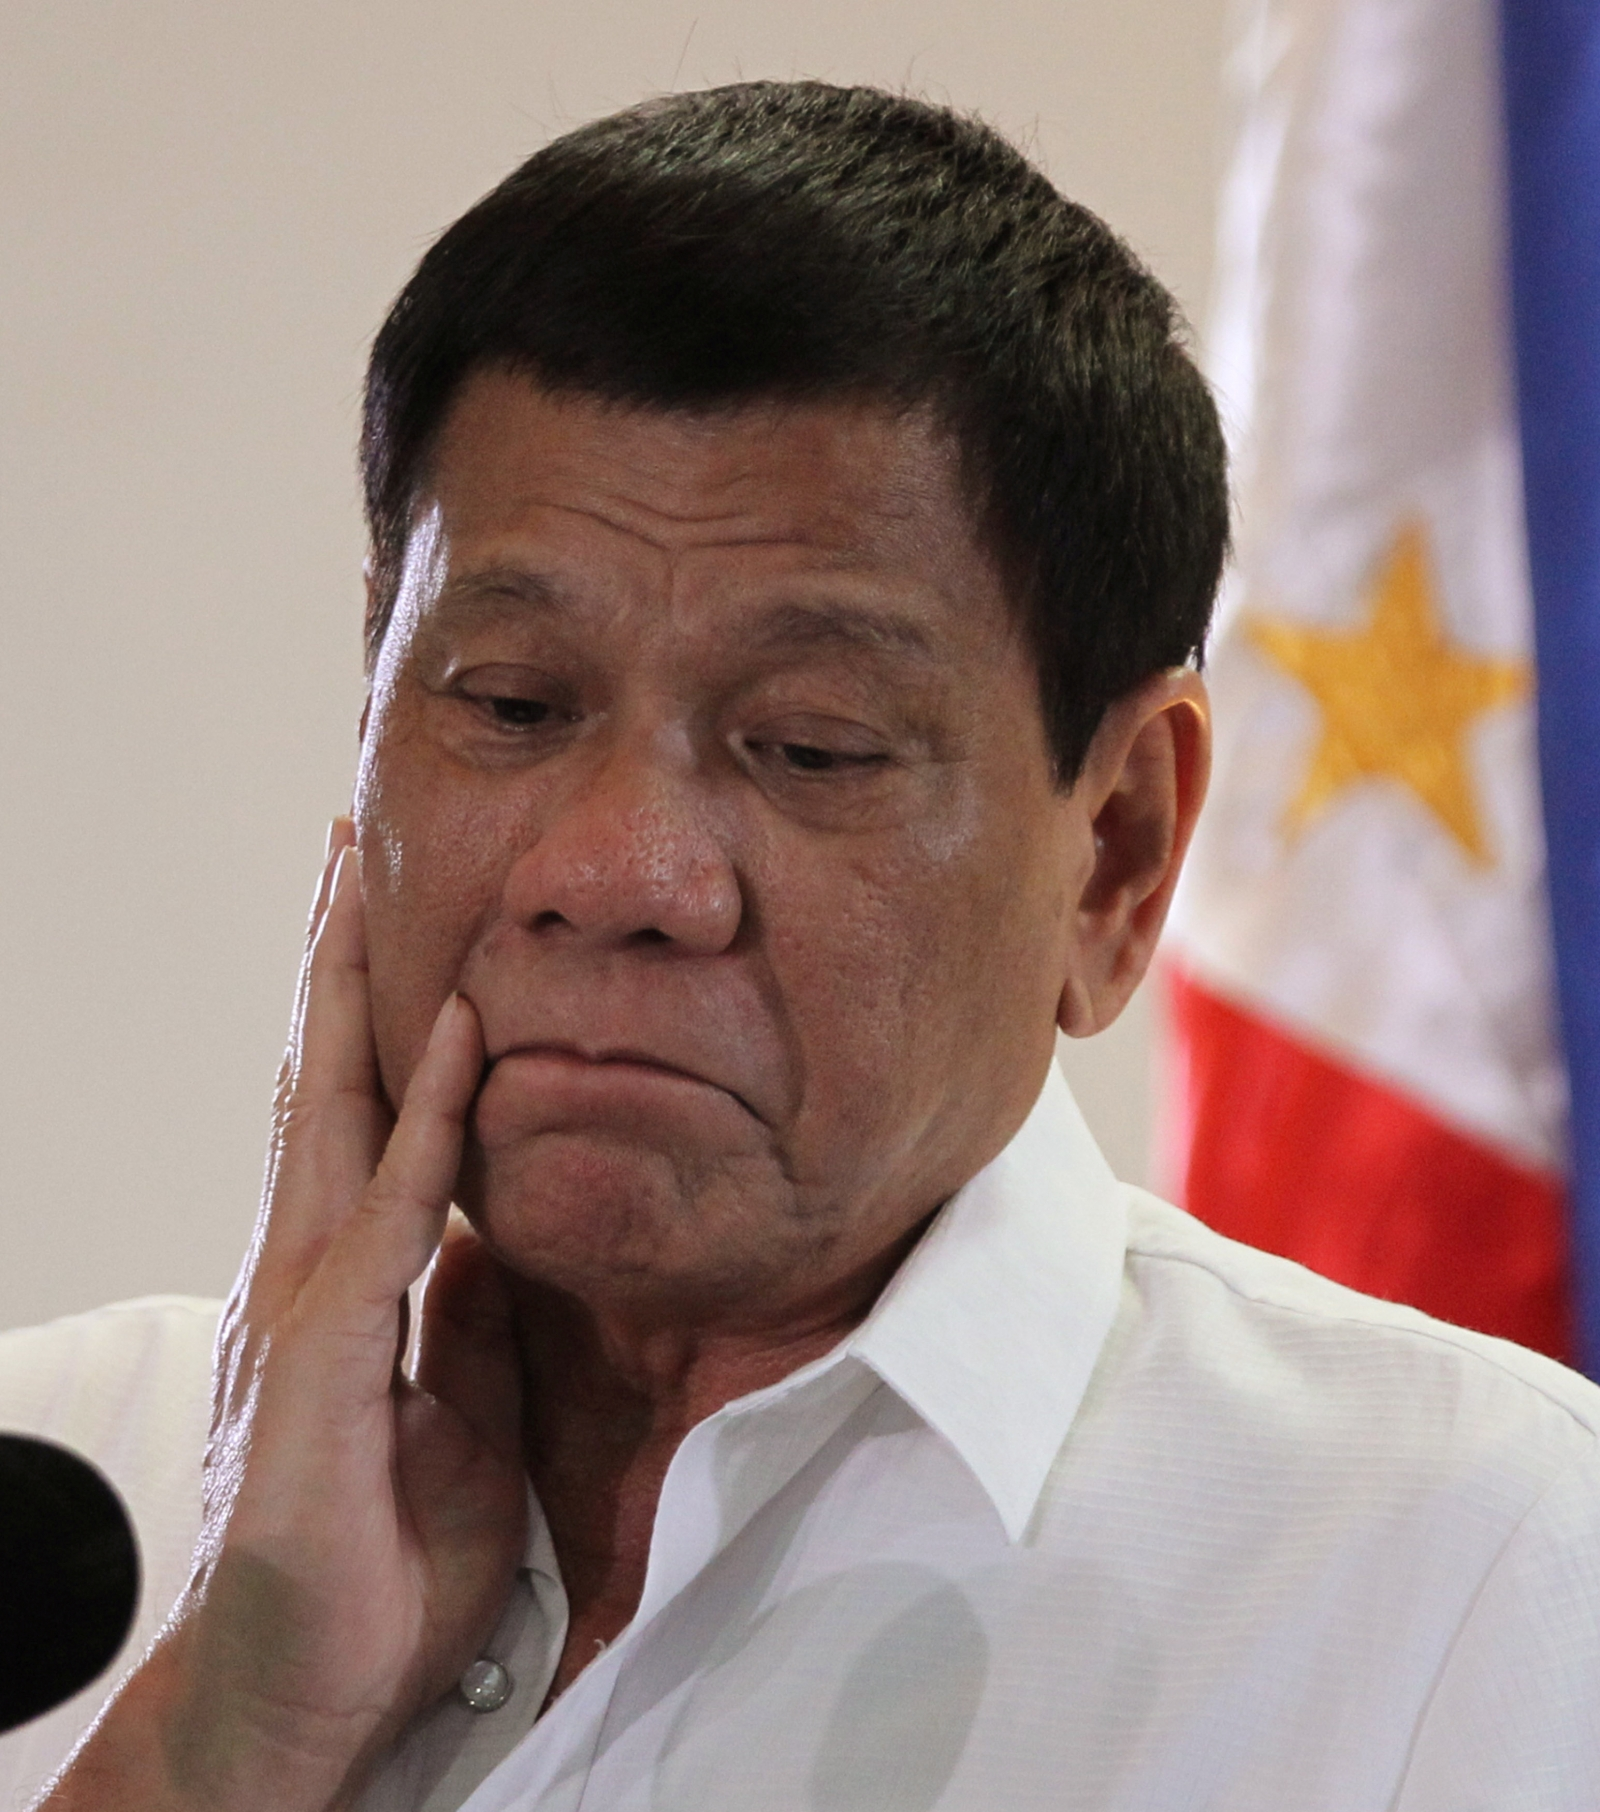 Duterte admitted that he personally killed drug dealers 12/14/2016